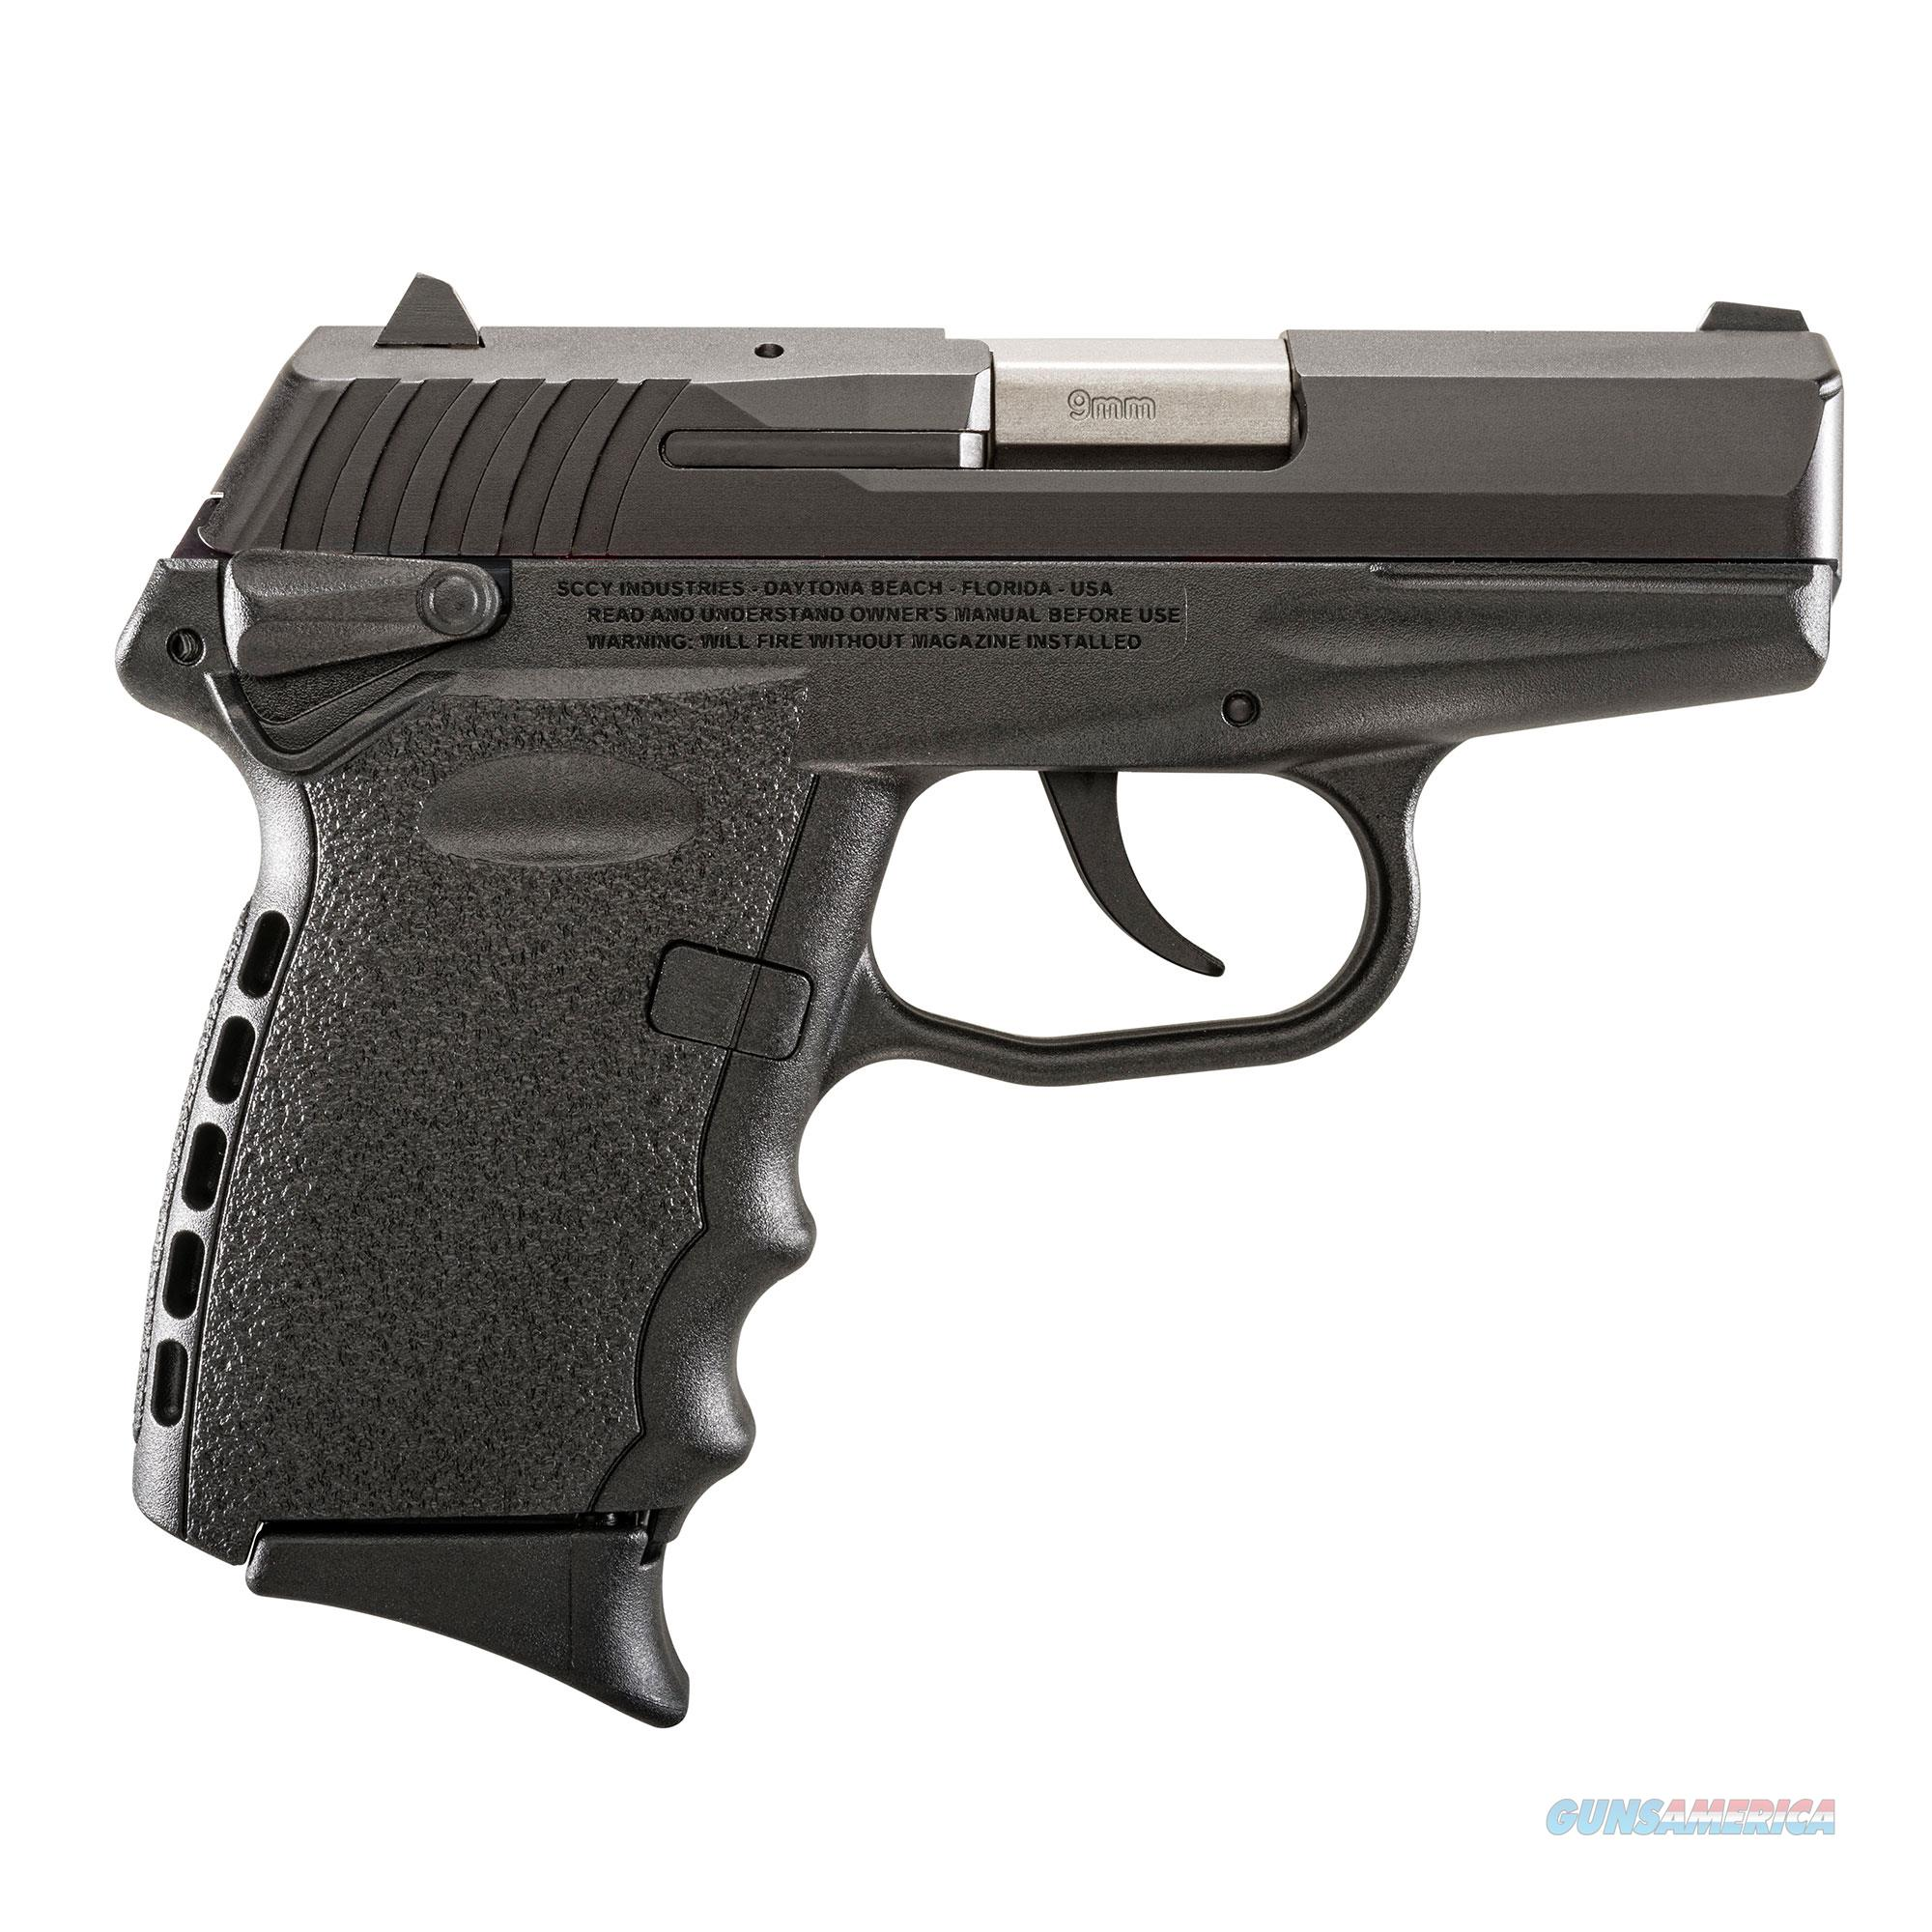 SCCY FIREARMS CPX-1 CB BLACK 9mm LUGER CPX1CB  Guns > Pistols > SCCY Pistols > CPX1